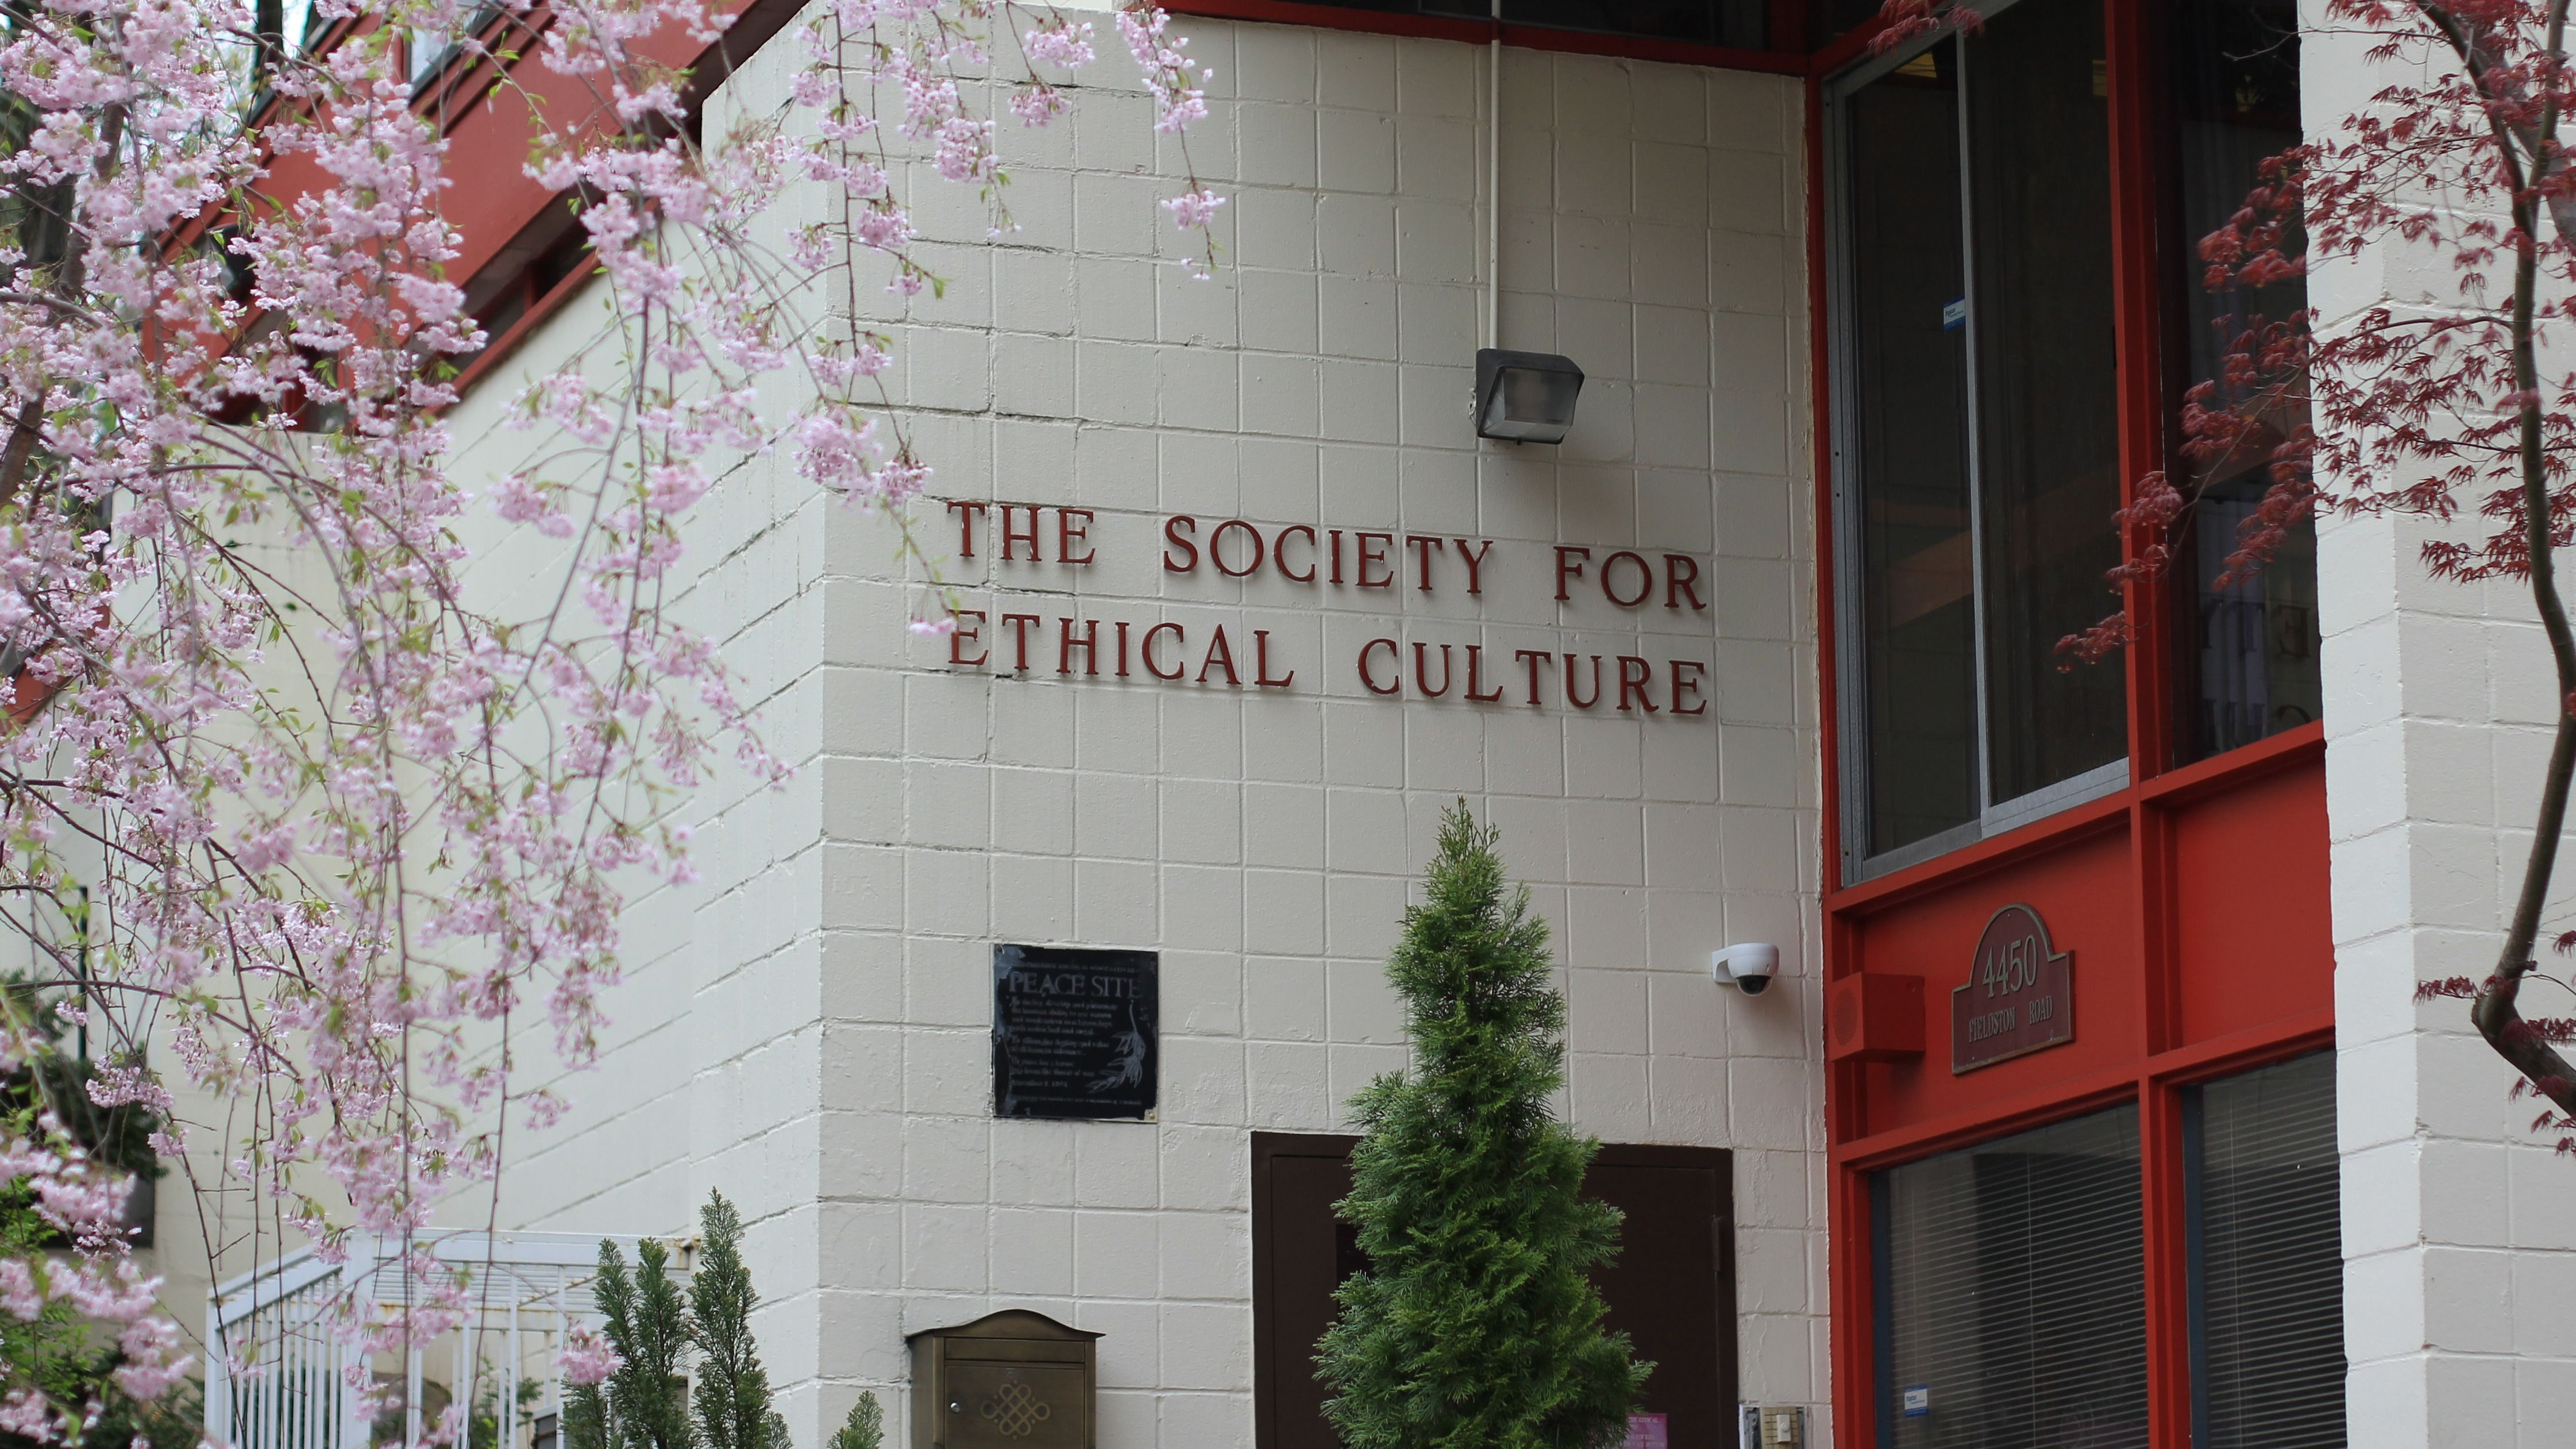 Riverdale Yonkers Ethical Culture Society